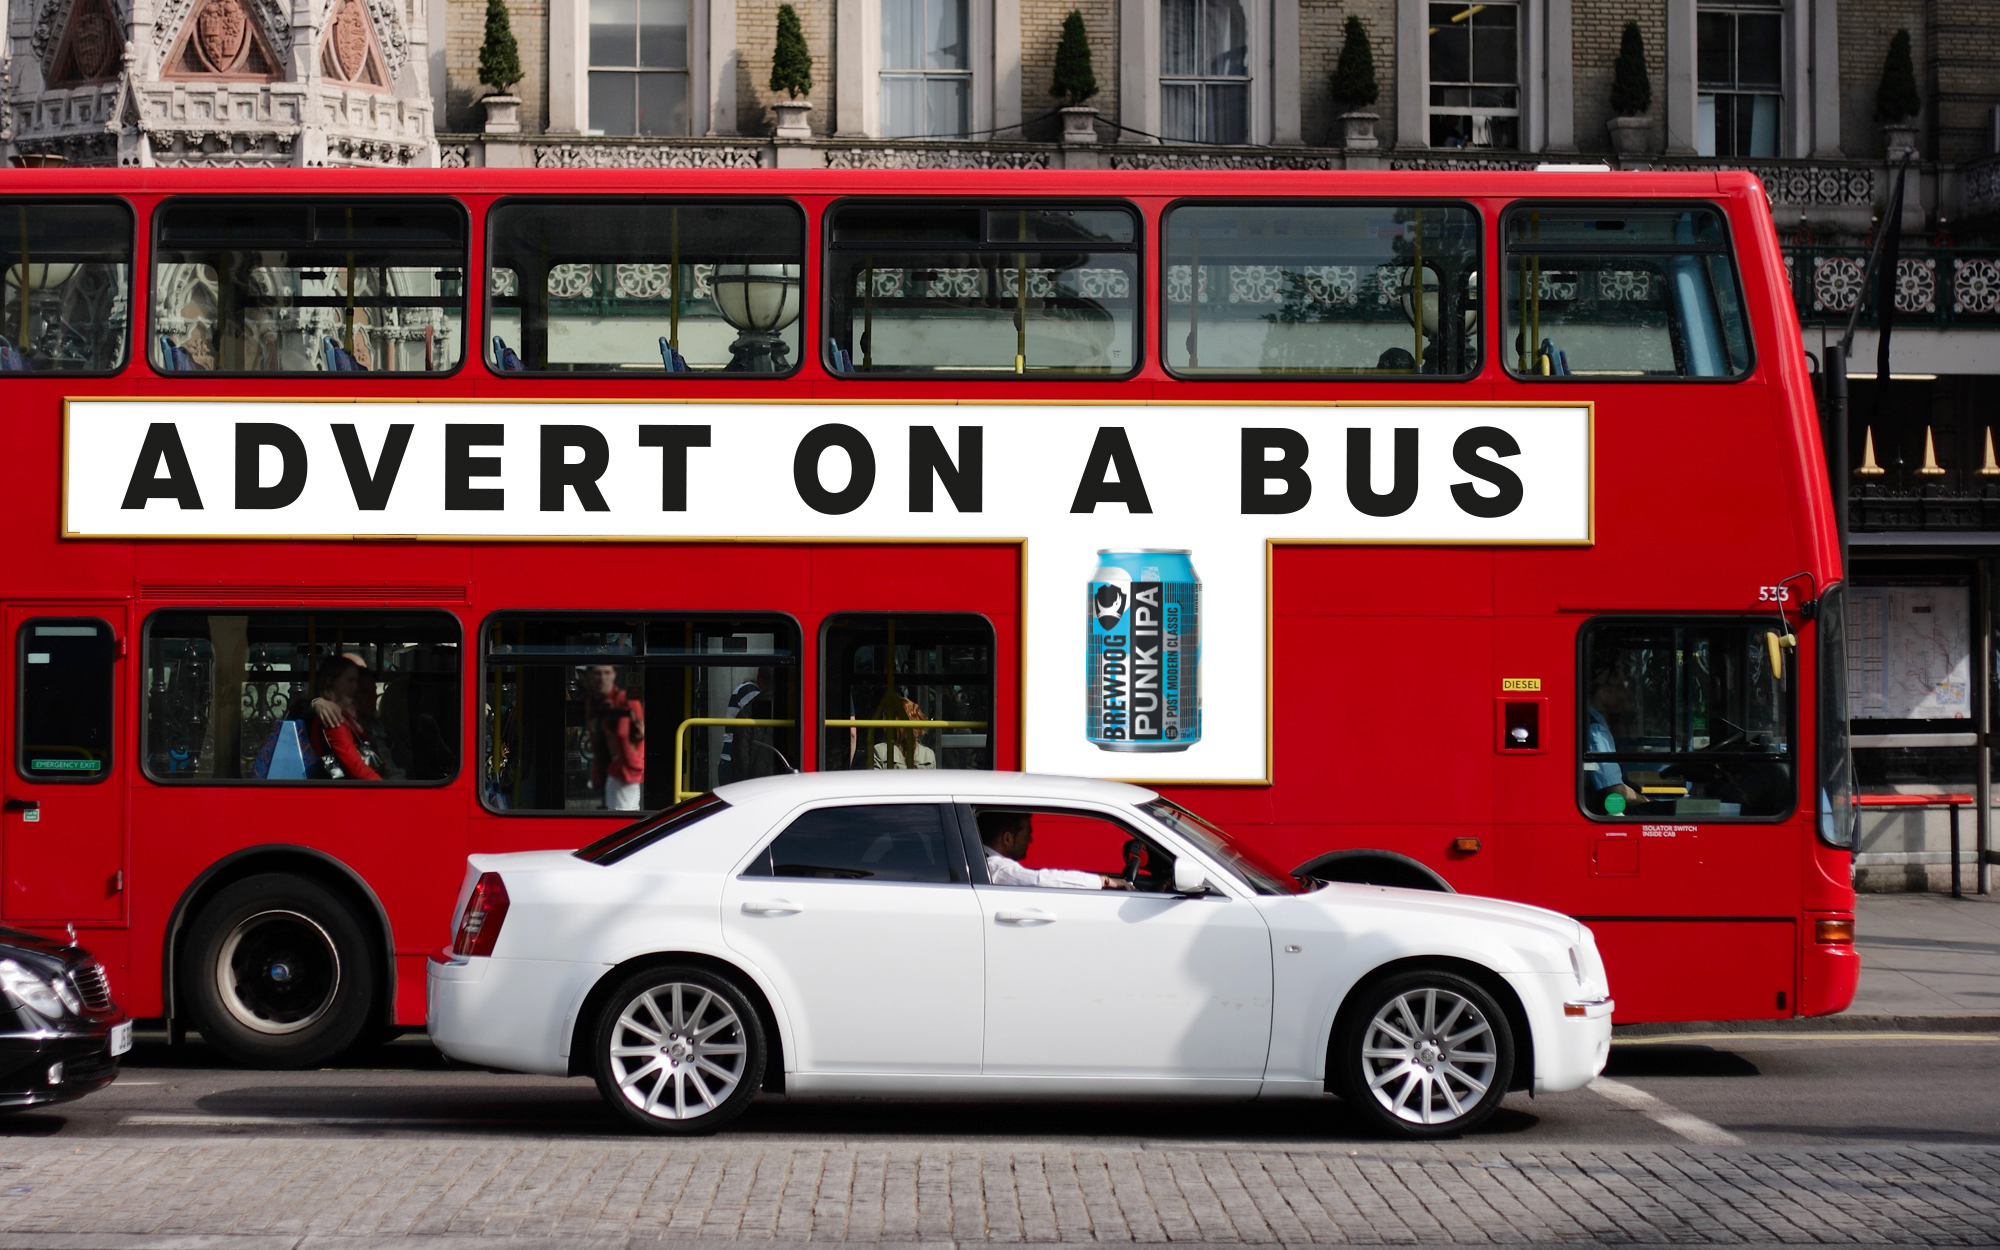 Brewdog advert on a bus